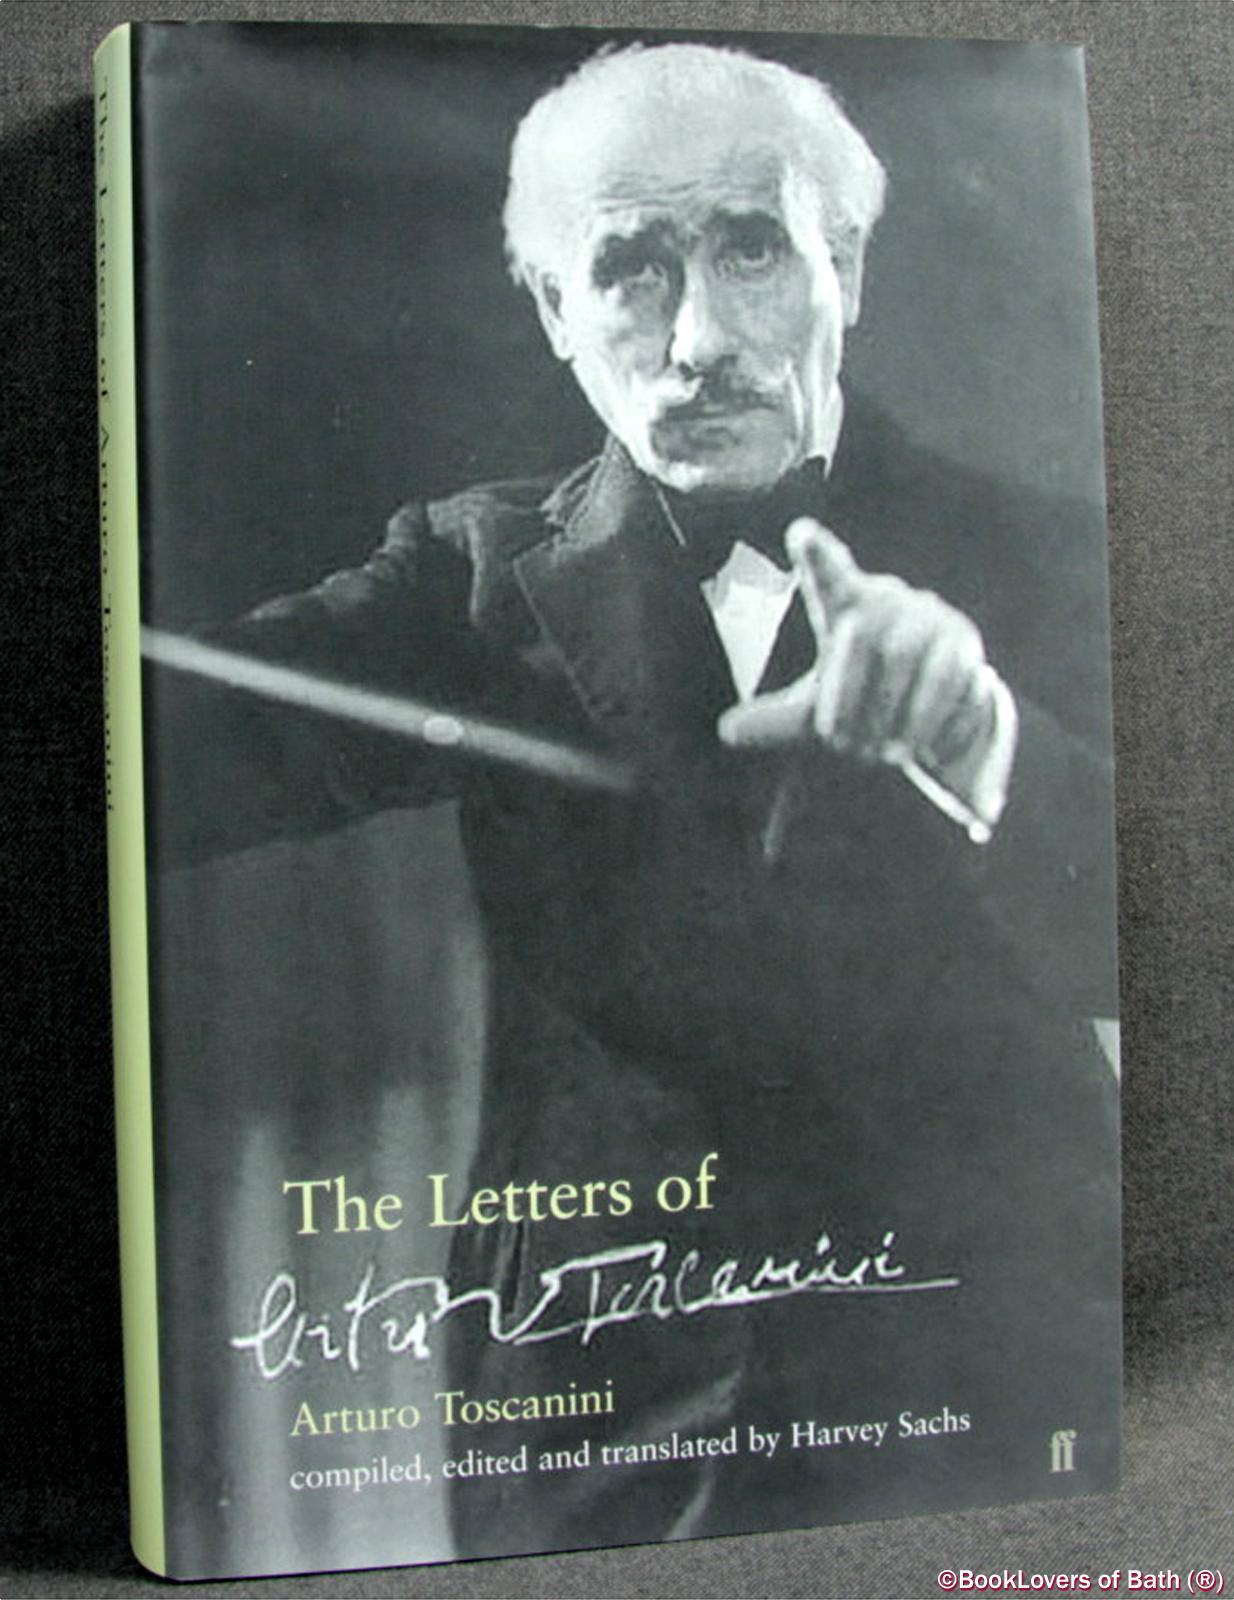 The Letters of Arturo Toscanini - Harvey Sachs